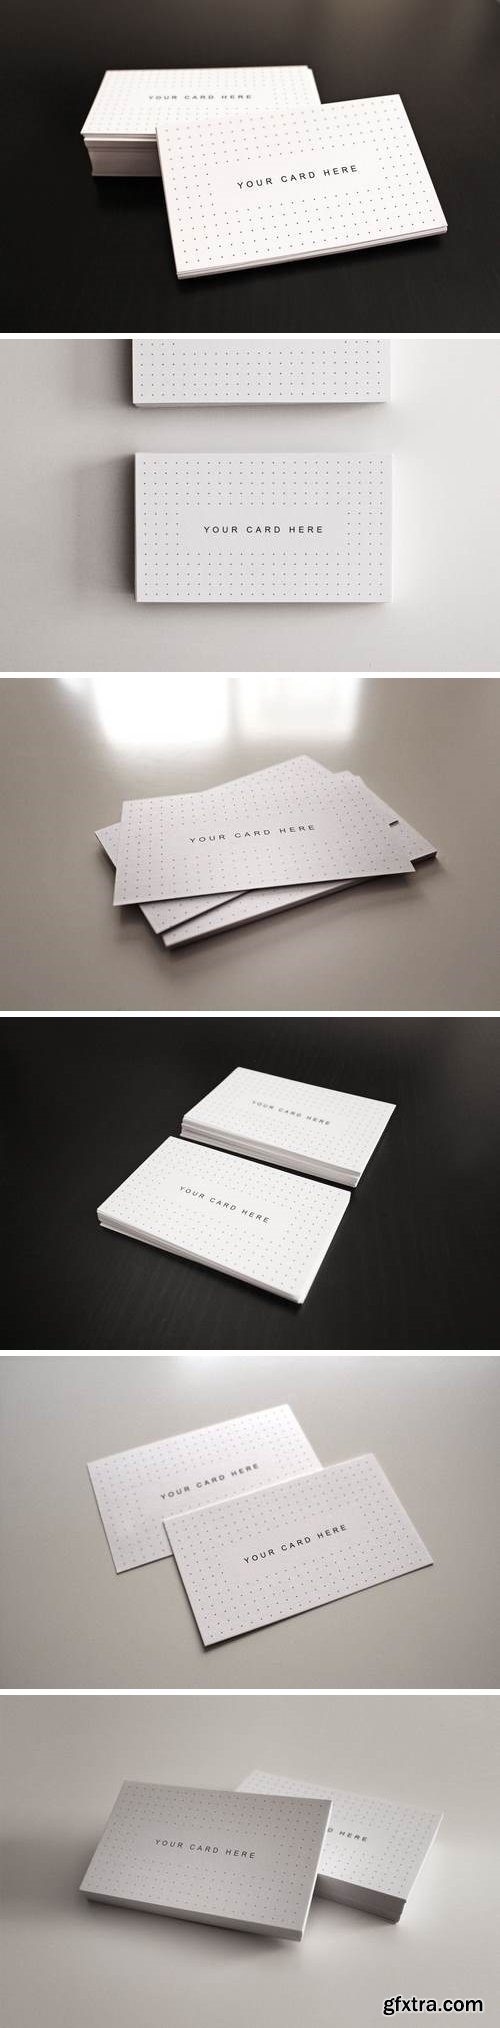 Flyer and Business Card Clean Realistic Mockups 3